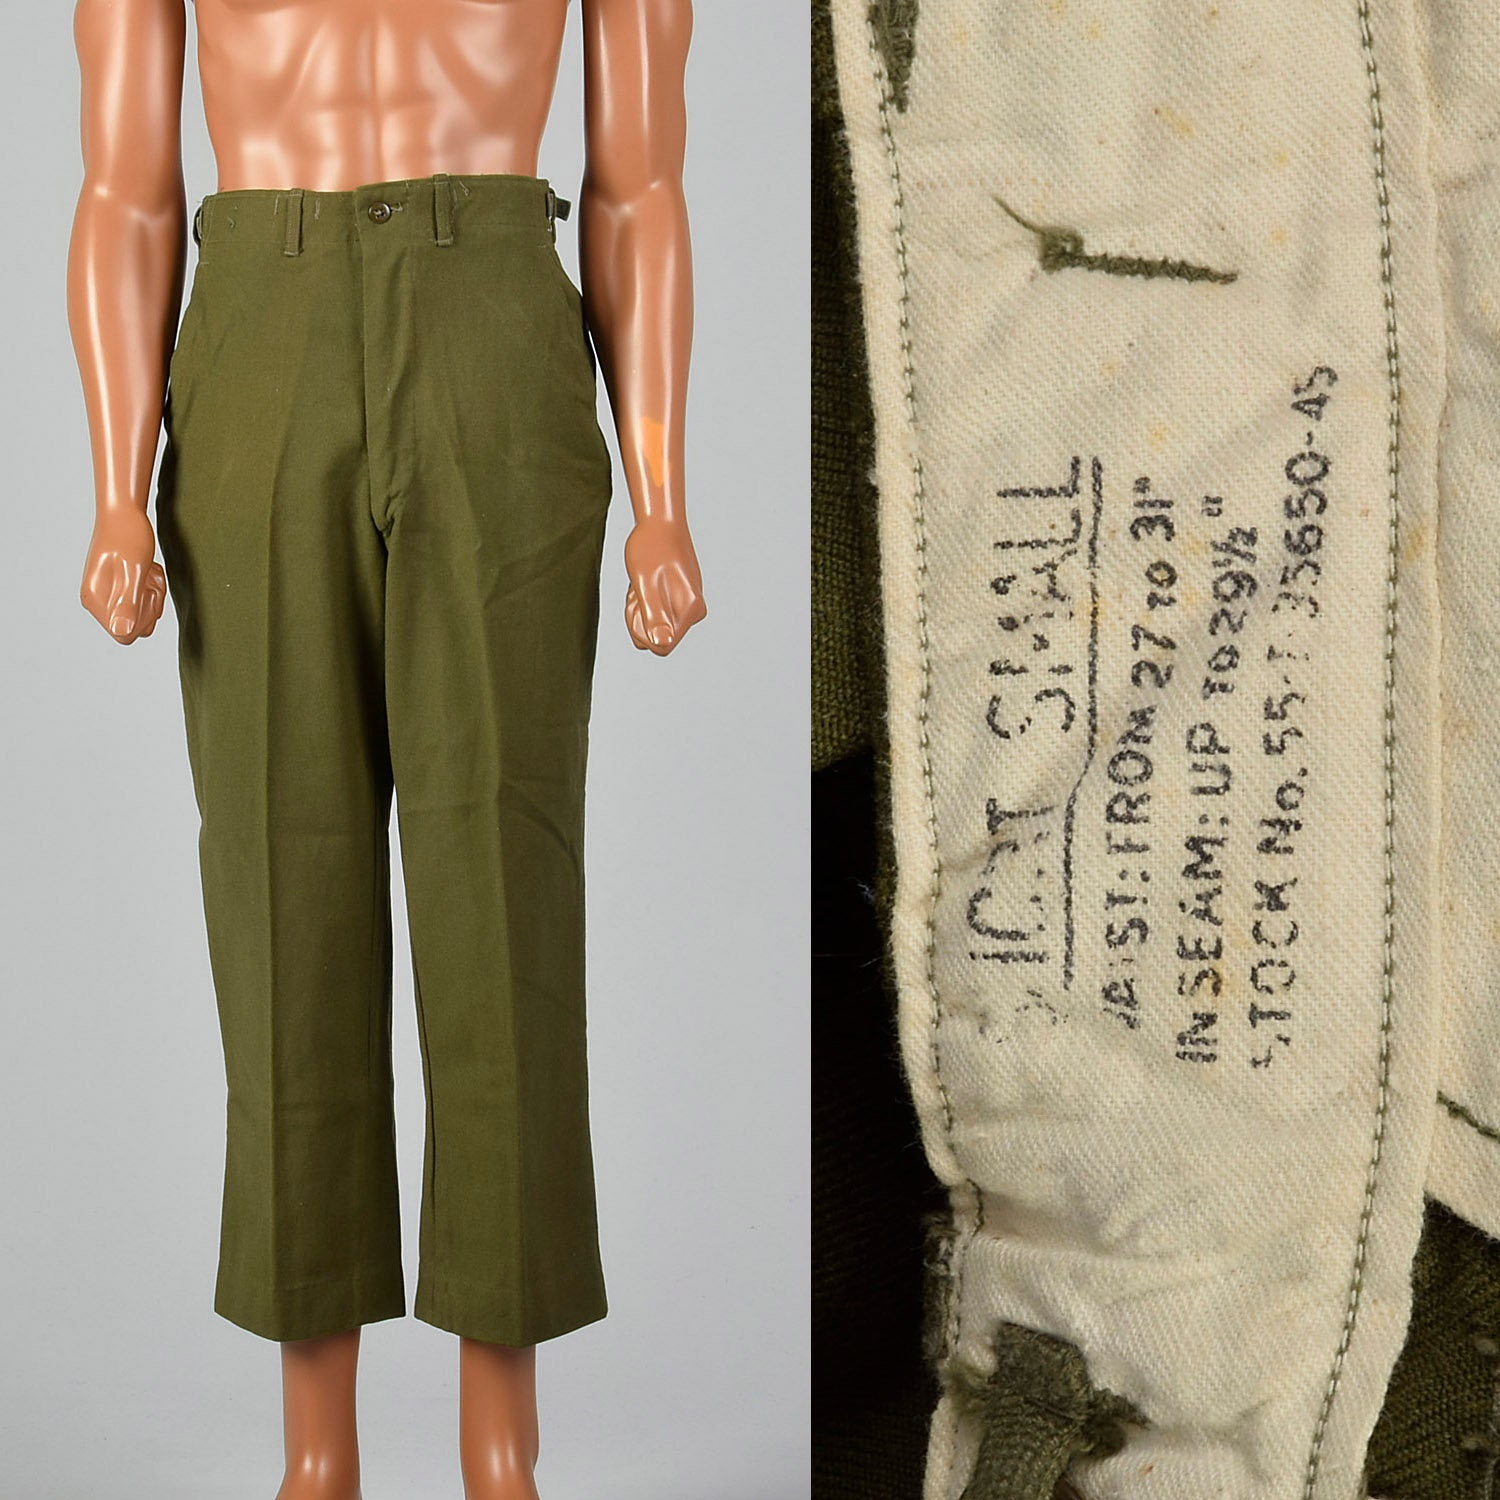 1950s Mens Hats | 50s Vintage Men's Hats Small 1950S Mens Wool Military Field Trousers Flap Pockets Adjustable Waist Green 50S Vintage Pants $0.00 AT vintagedancer.com